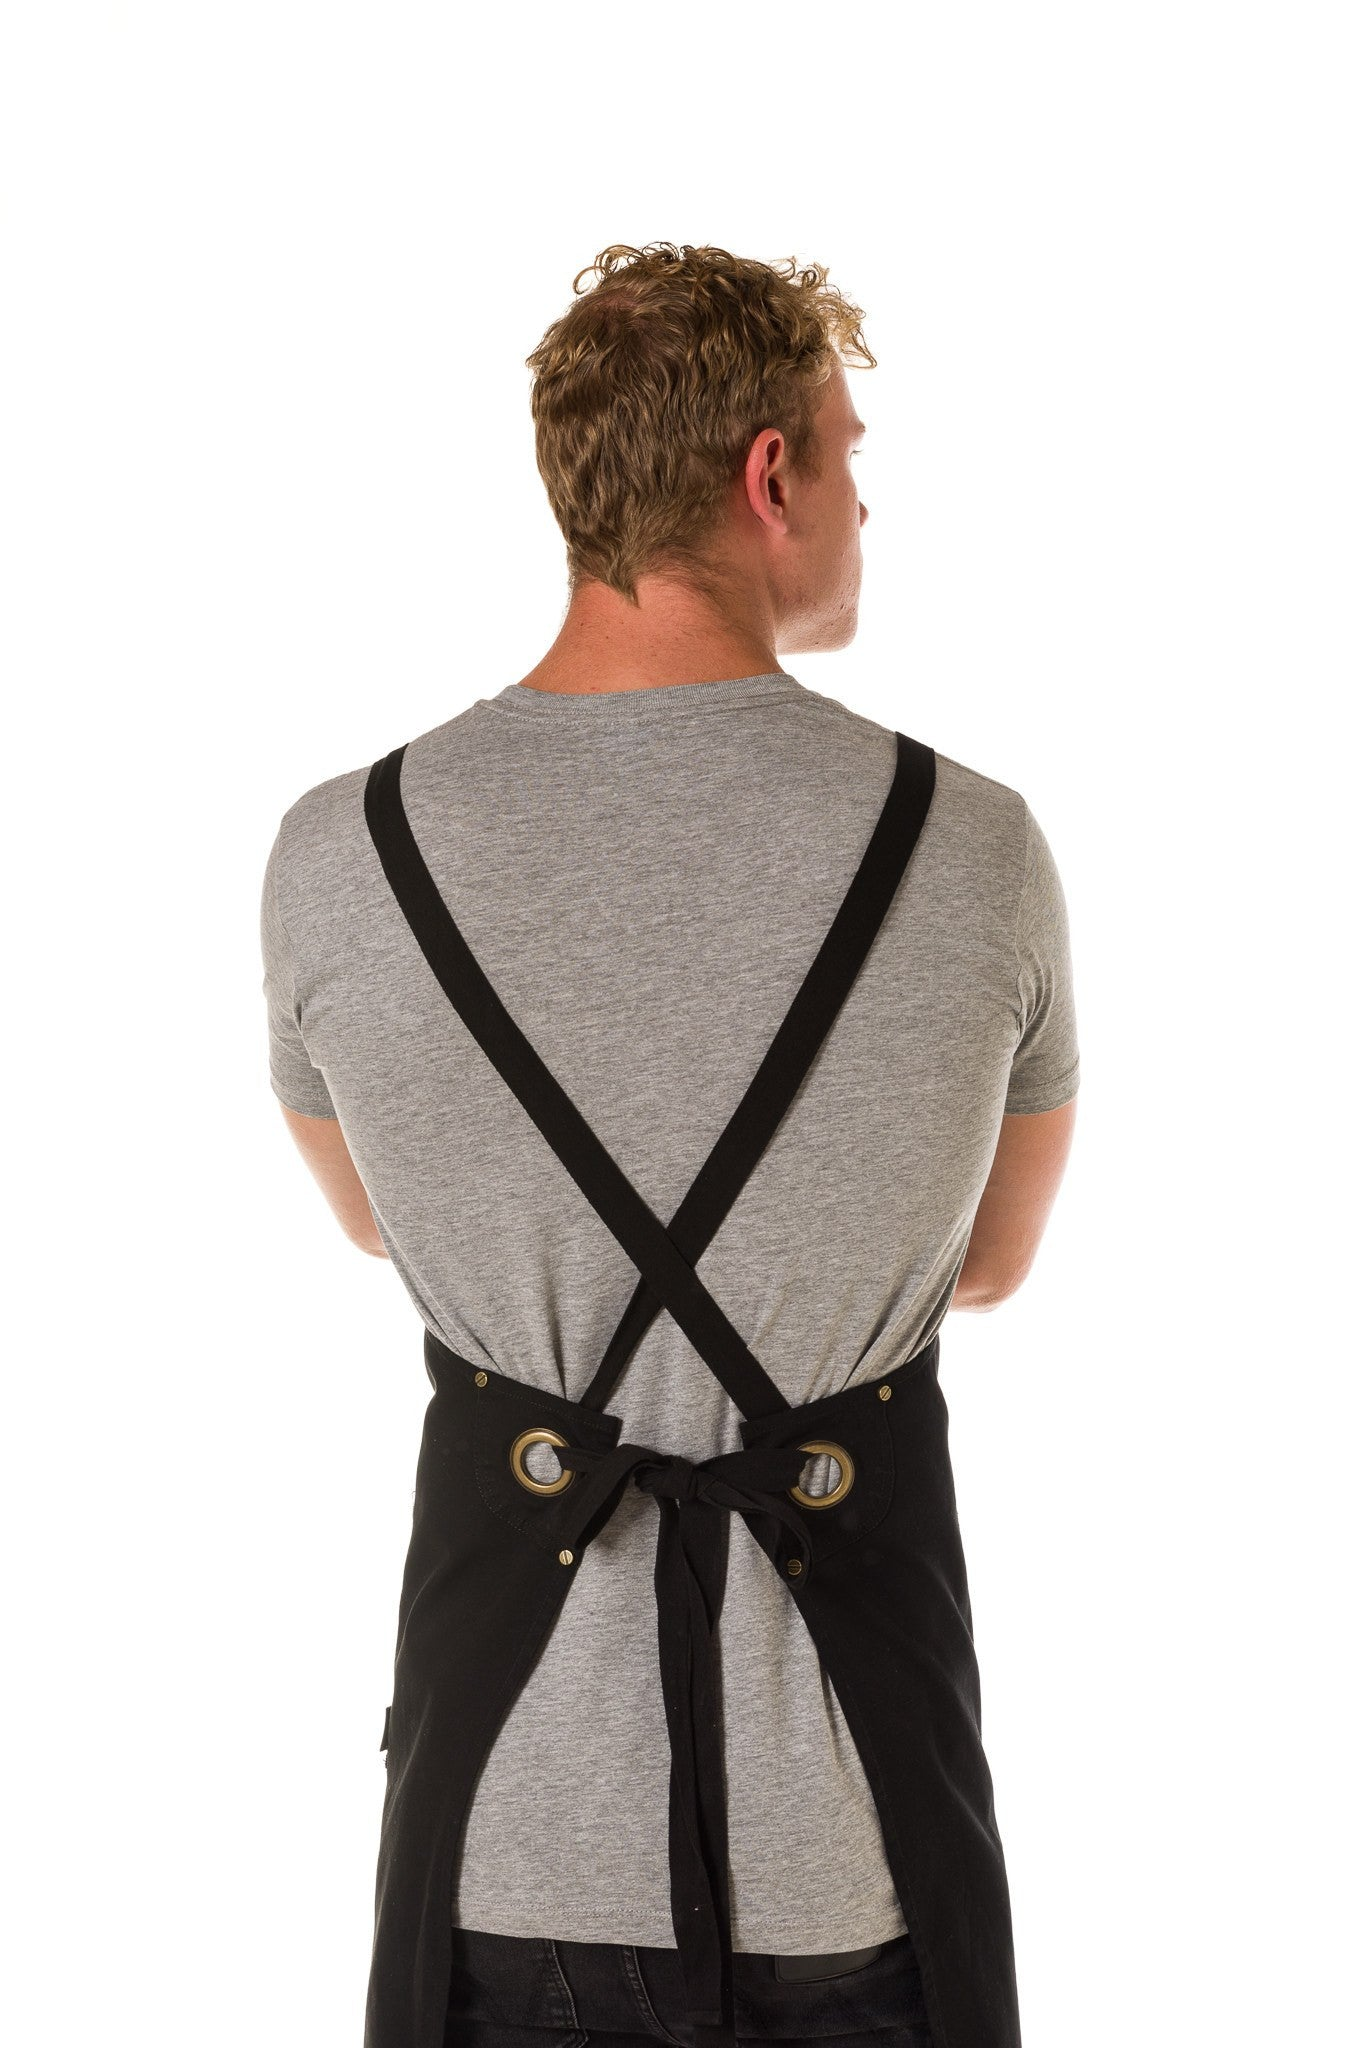 ARCHIE Apron with textured tape straps and 2 pkts - BLACK